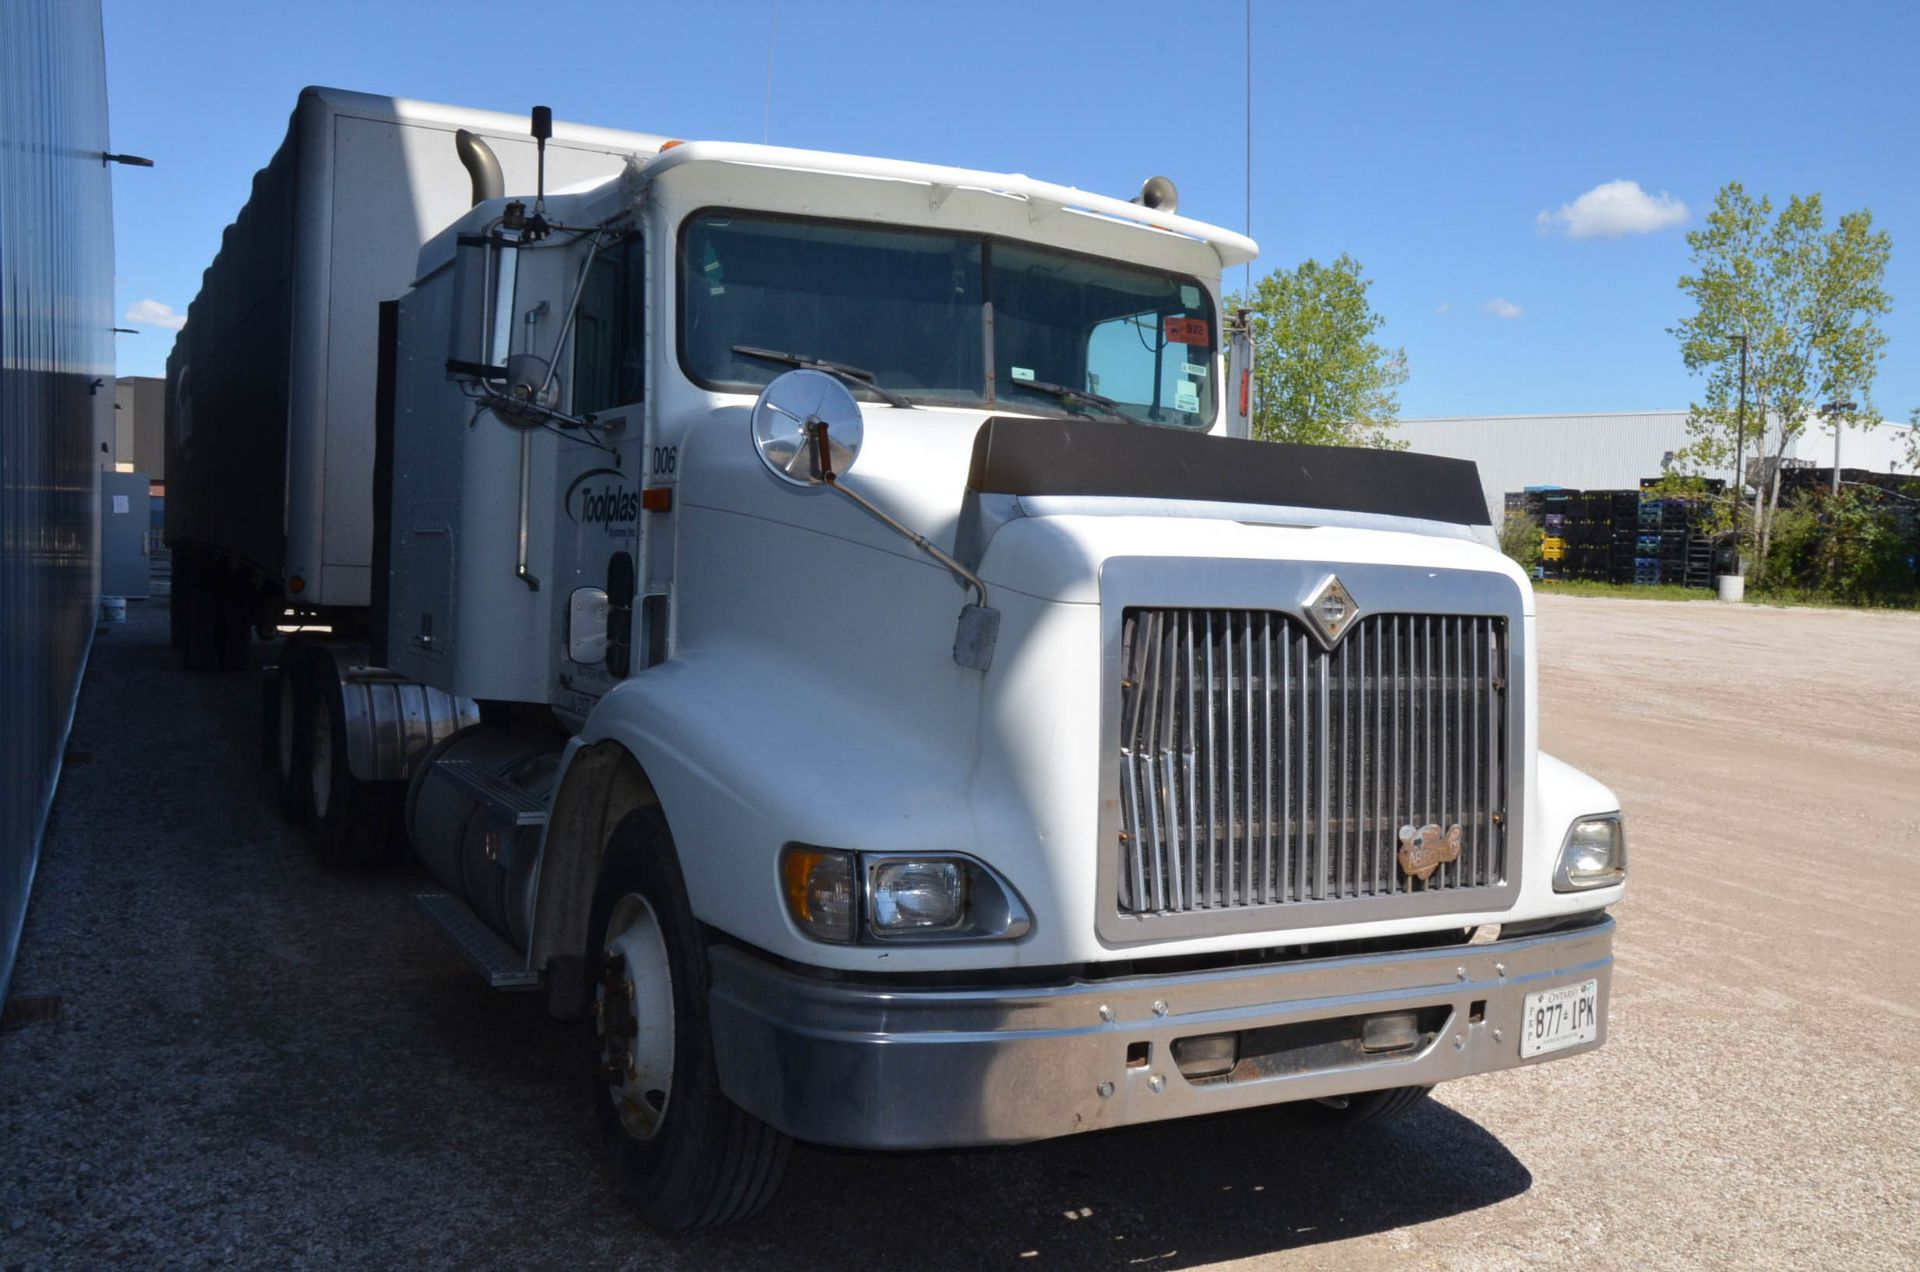 INTERNATIONAL 9200 6X4 TANDEM AXLE SEMI-TRACTOR TRUCK WITH . ENGINE, EATON-FULLER 13 SPEED MANUAL - Image 4 of 18